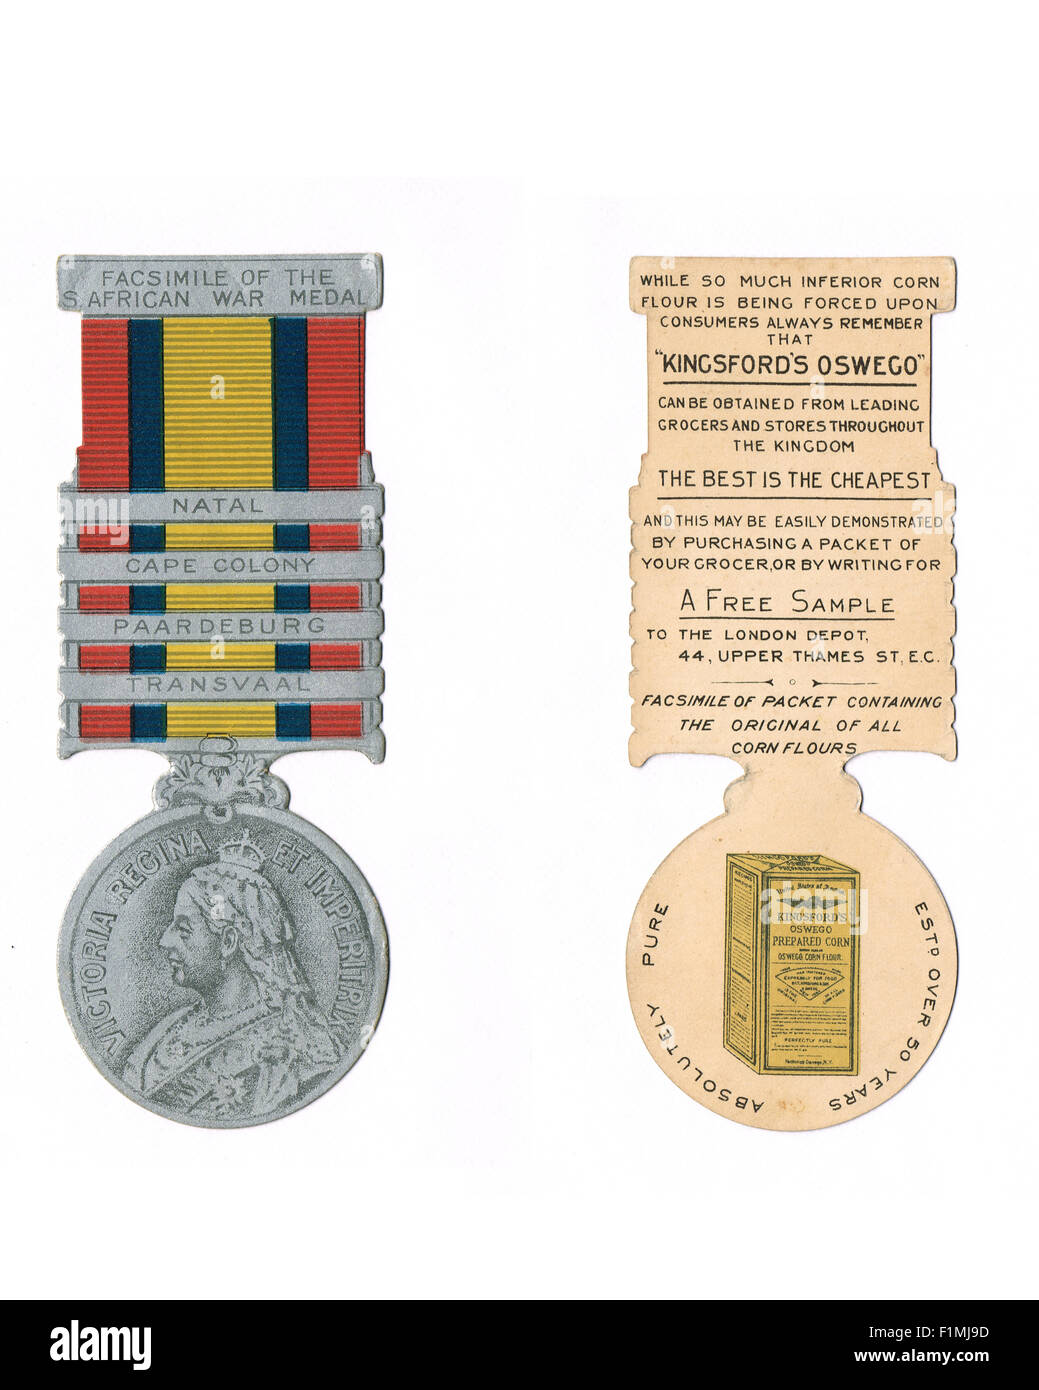 Novelty Kingsford's Oswego Advert South African War Medal circa 1900 - Stock Image